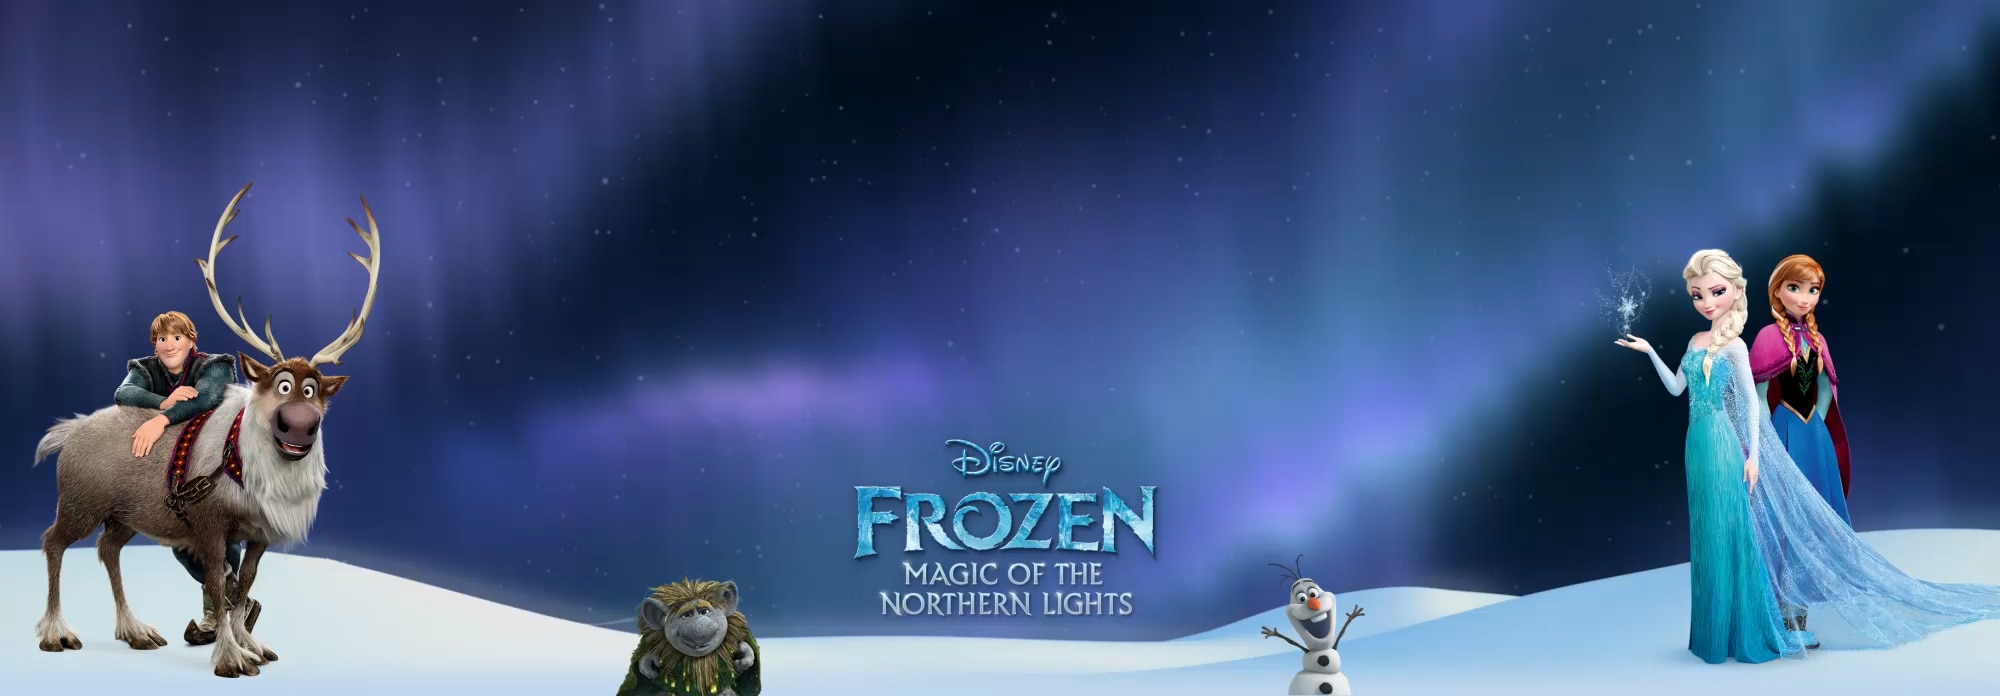 ZA Frozen Northern Lights Flex Hero Header